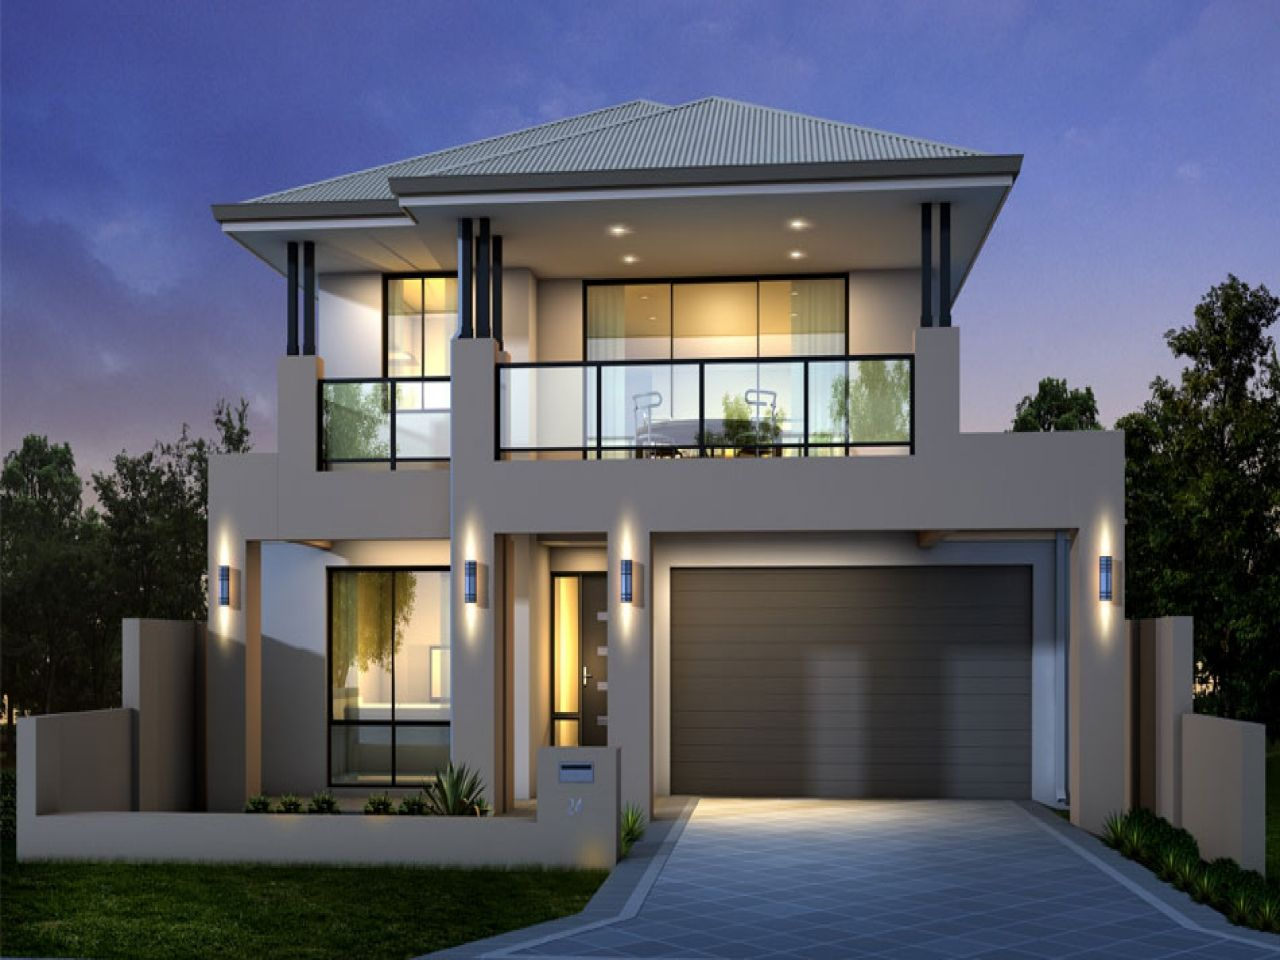 Top Ten Modern House Designs 2016 | Two story house design ...